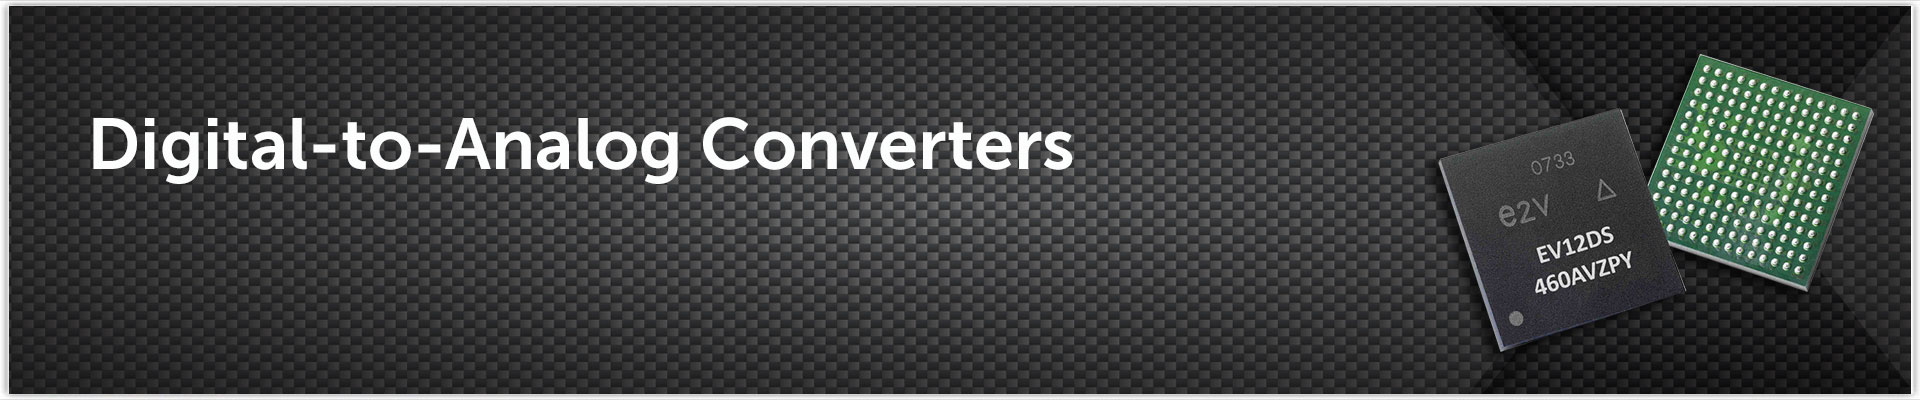 Converters - Digital-to-Analog